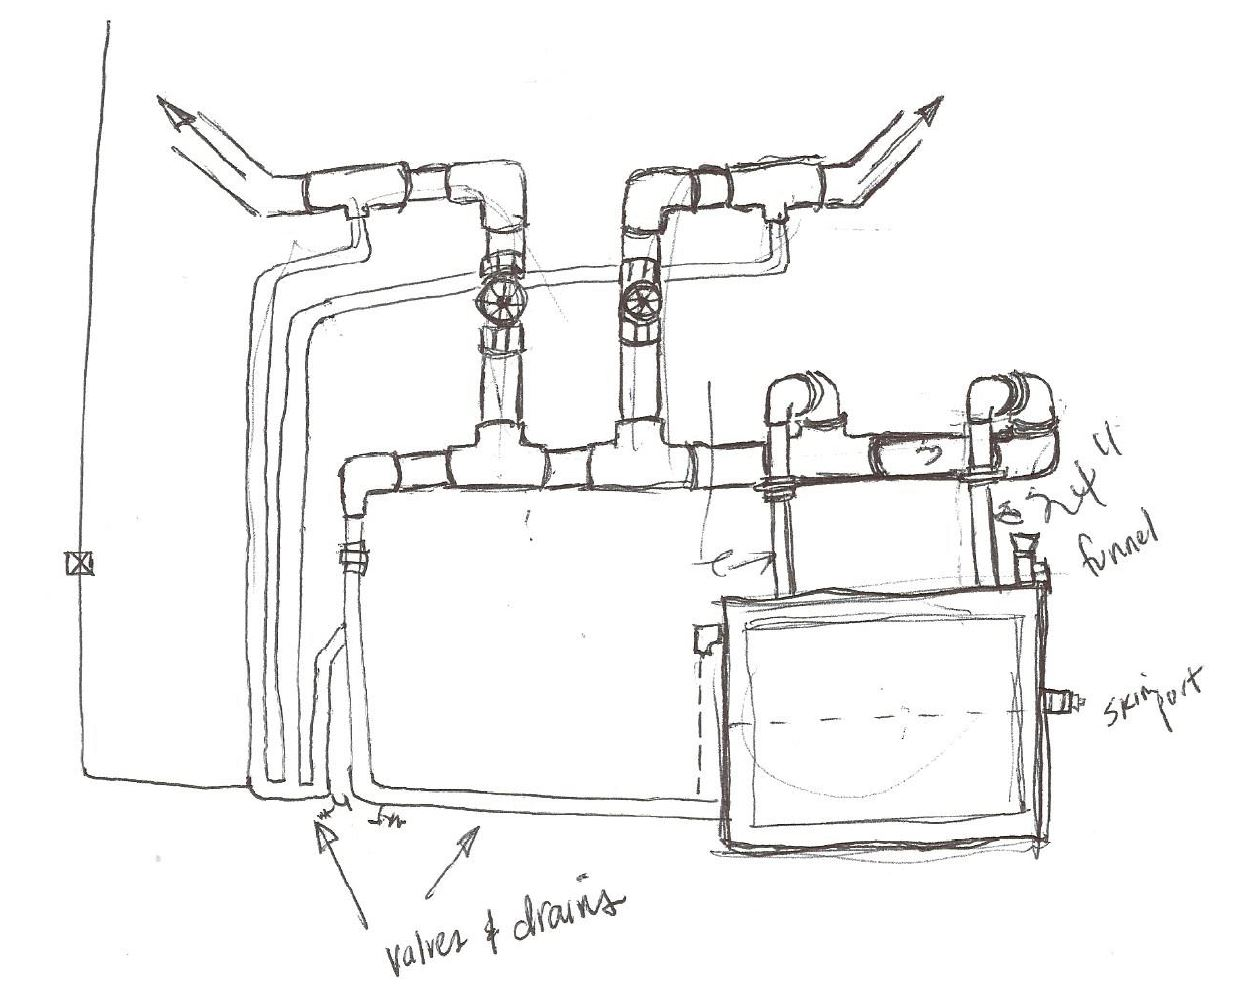 One Pipe Counterflow Project